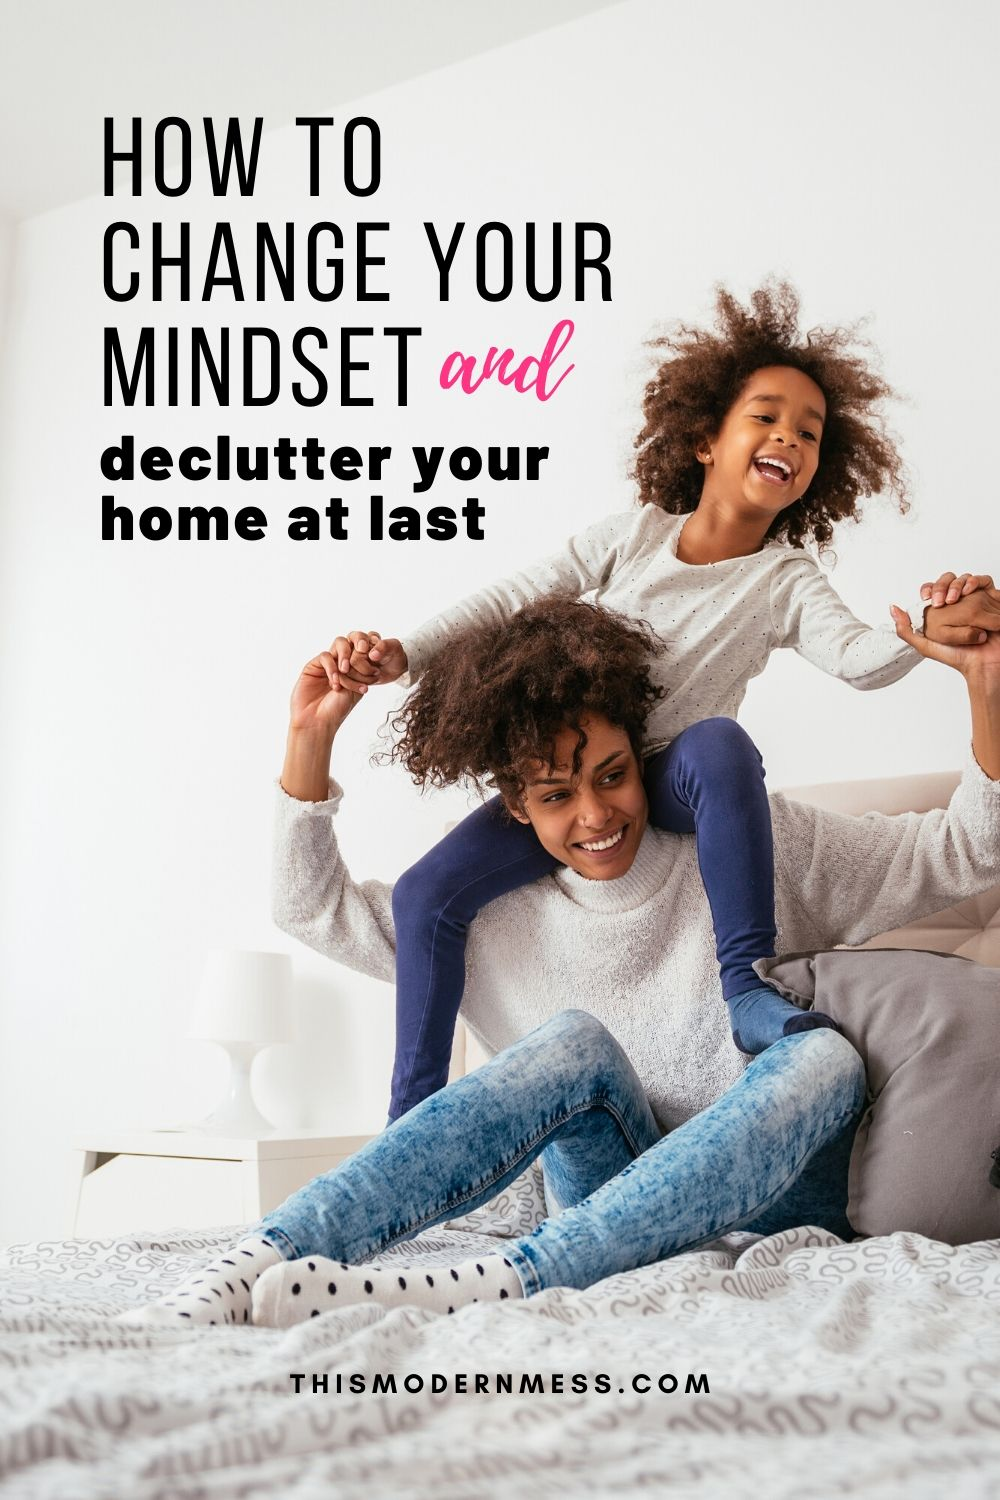 How to Change Your Mindset and Declutter Your Home at Last